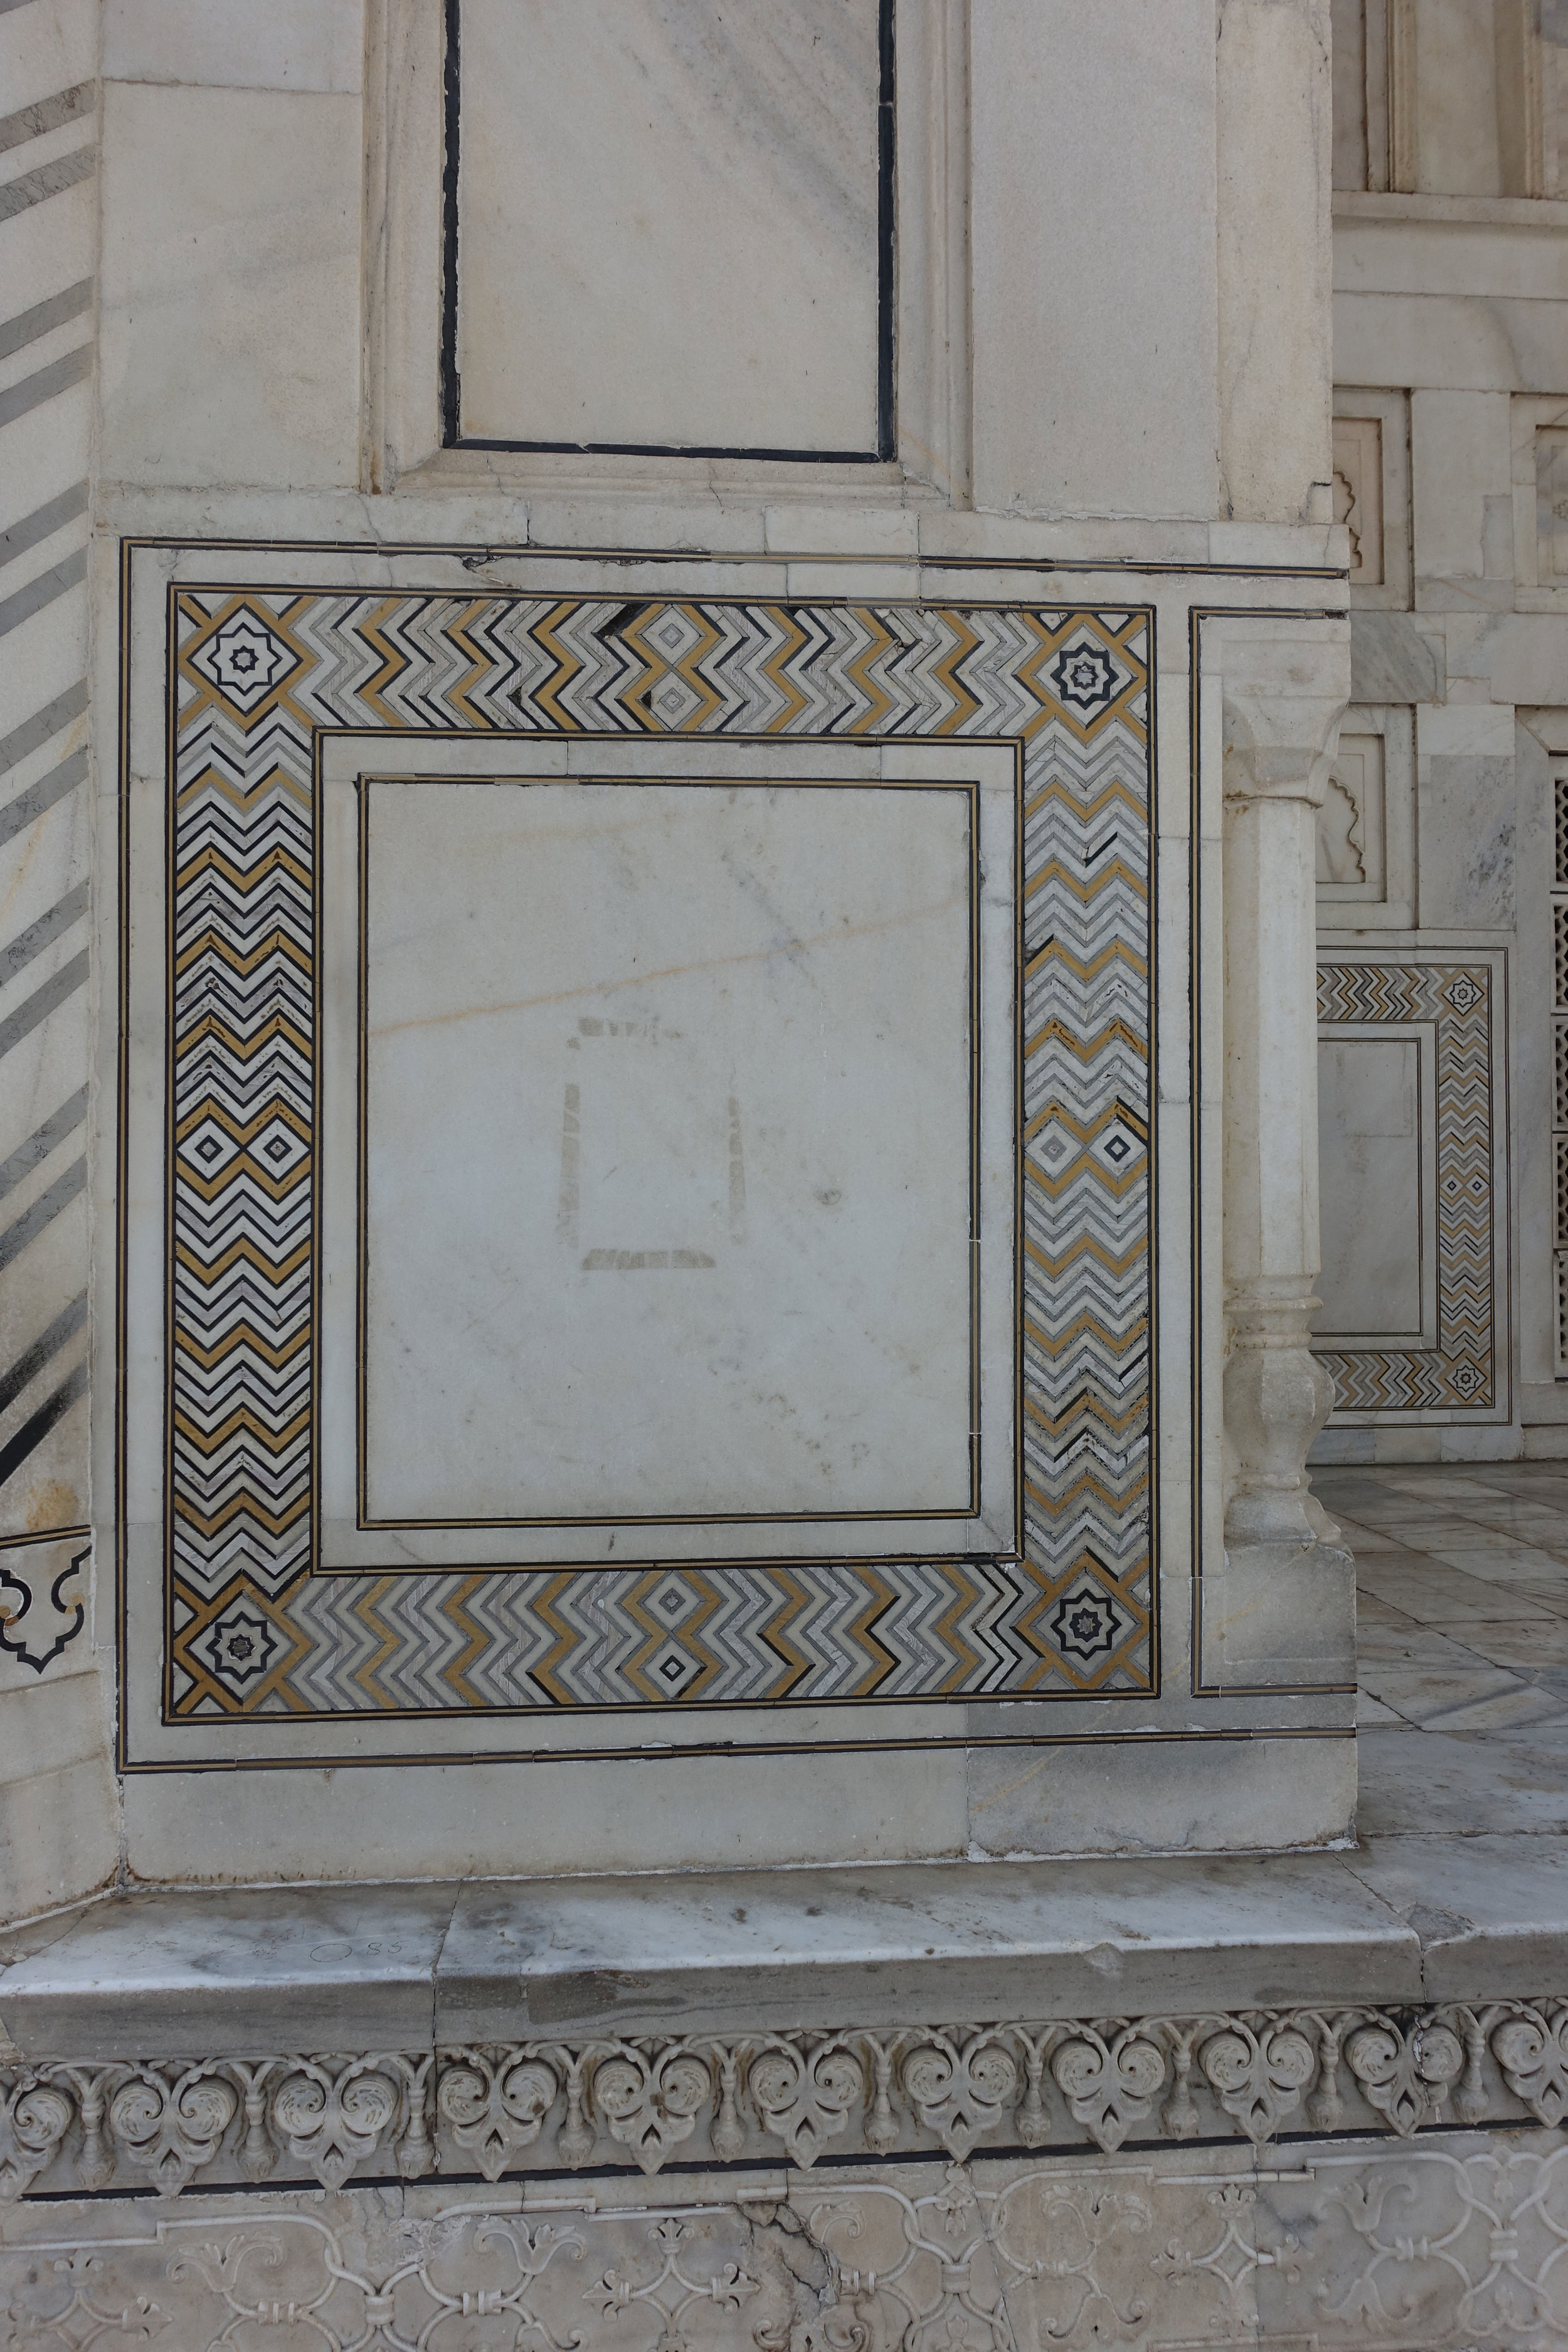 details of the building